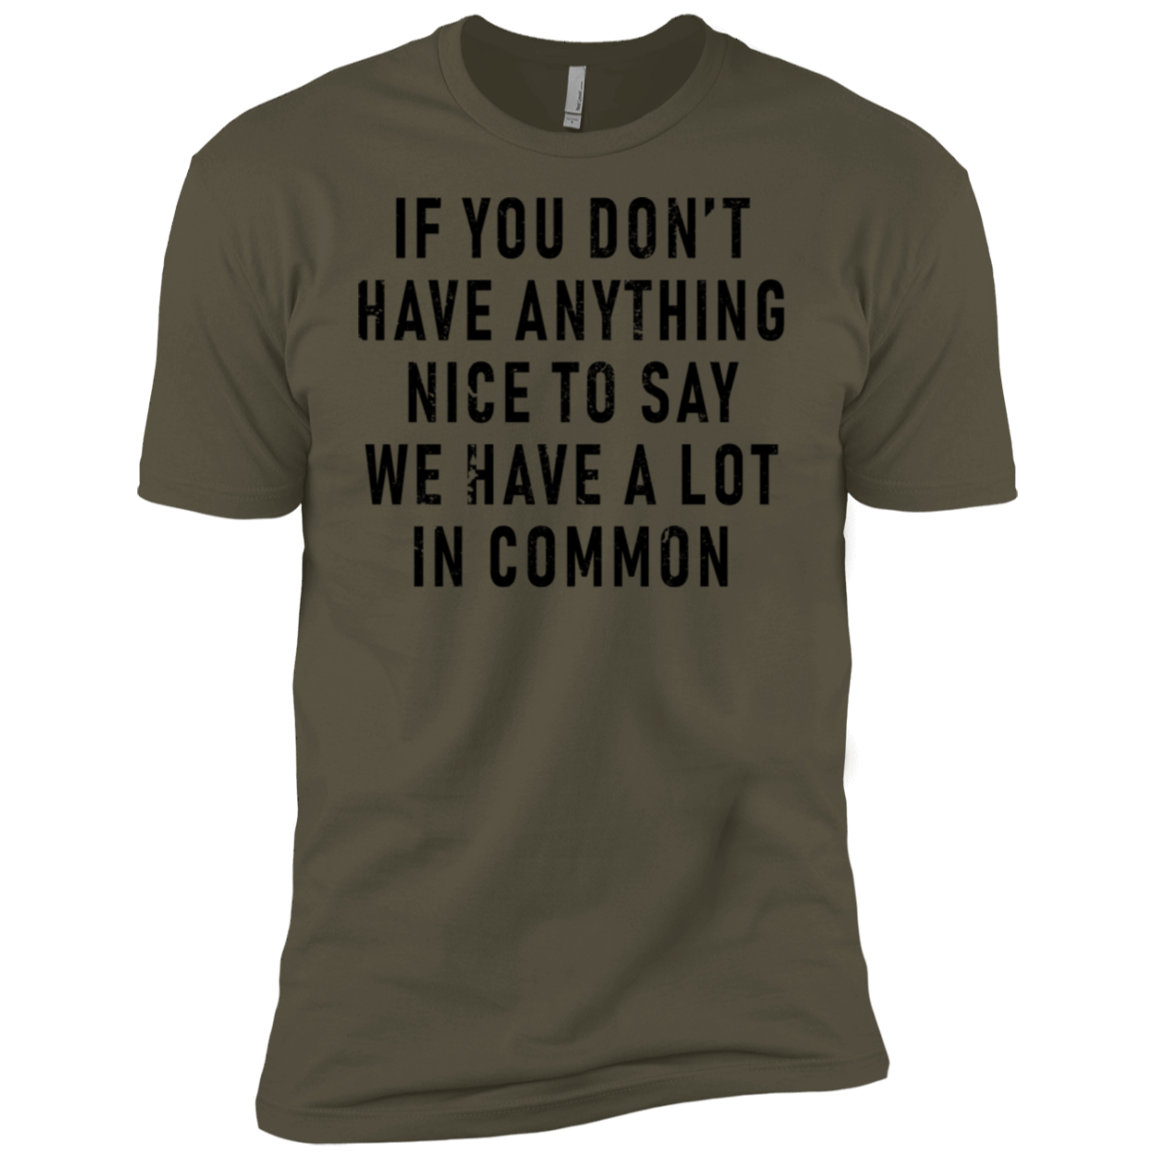 If You Don't Have Anything Nice To Say, We Have A Lot In Common Men's Classic Tee